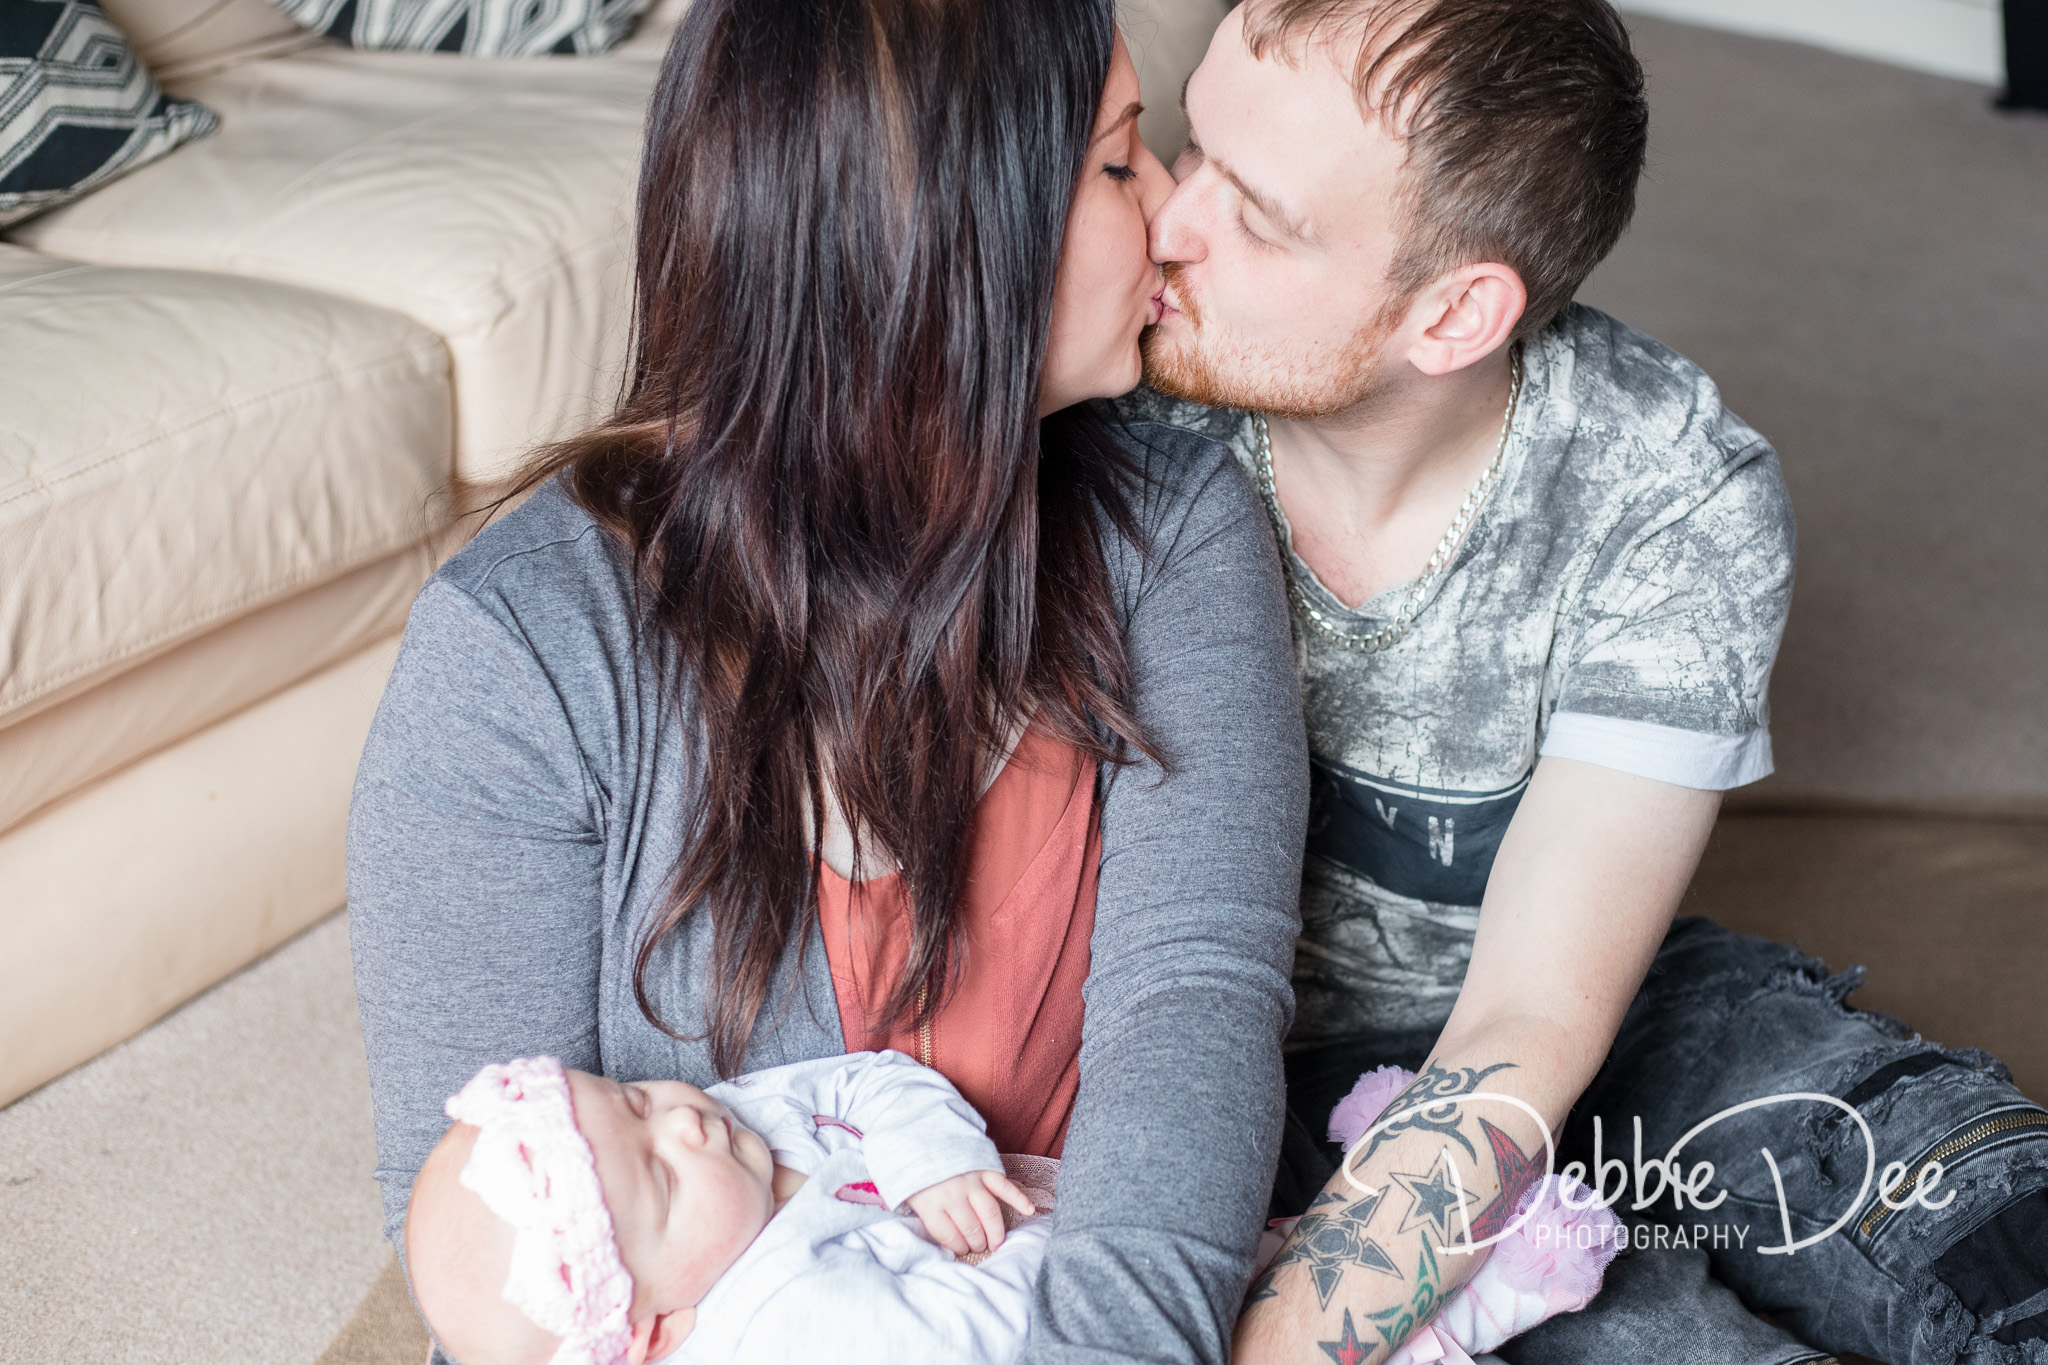 Family photography in-home lifestyle session aberdeenshire Debbie Dee Photography mum and dad kissing while holding baby